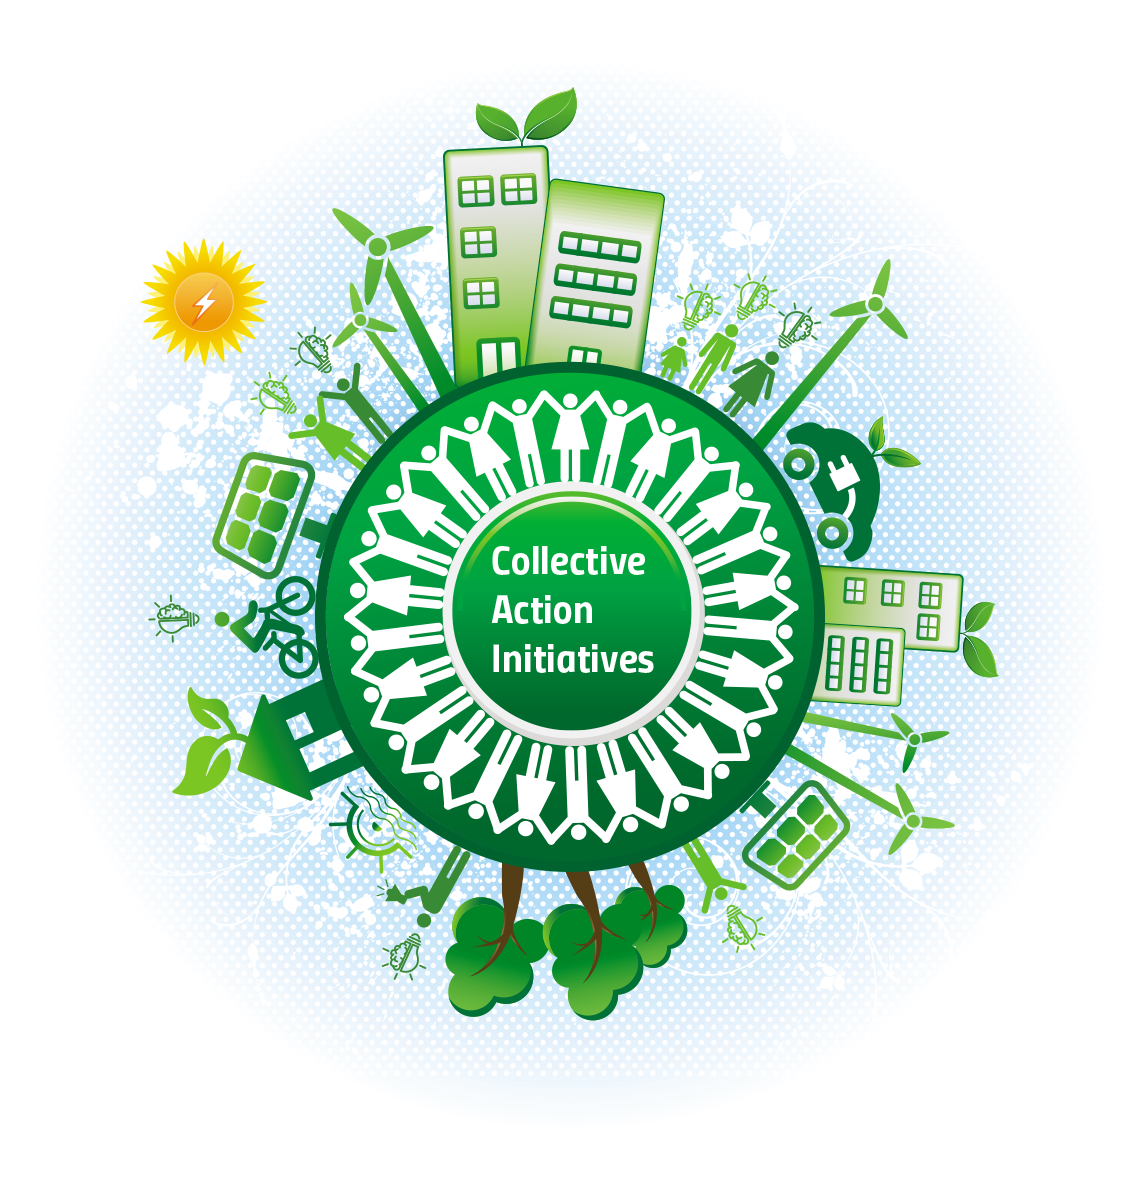 Collective Action Initiative